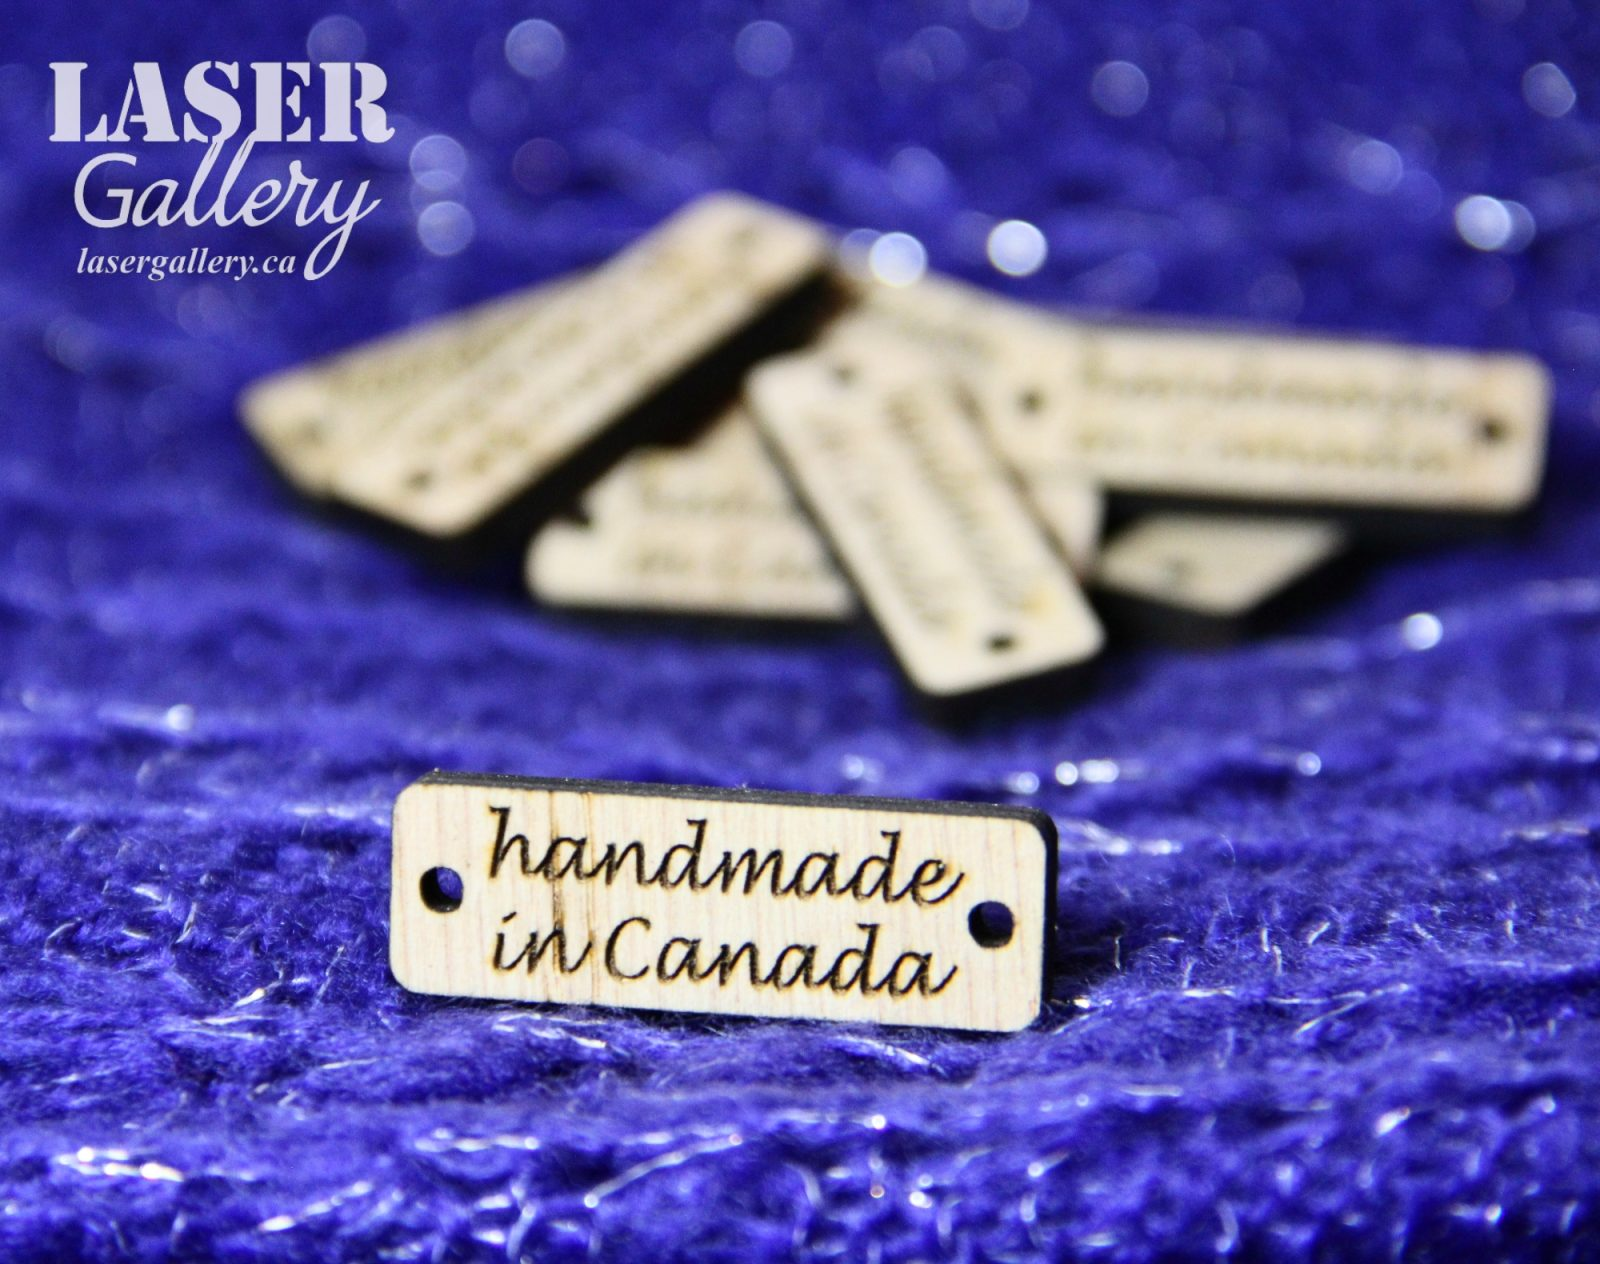 Handmade Labels Wooden Tags Laser Gallery